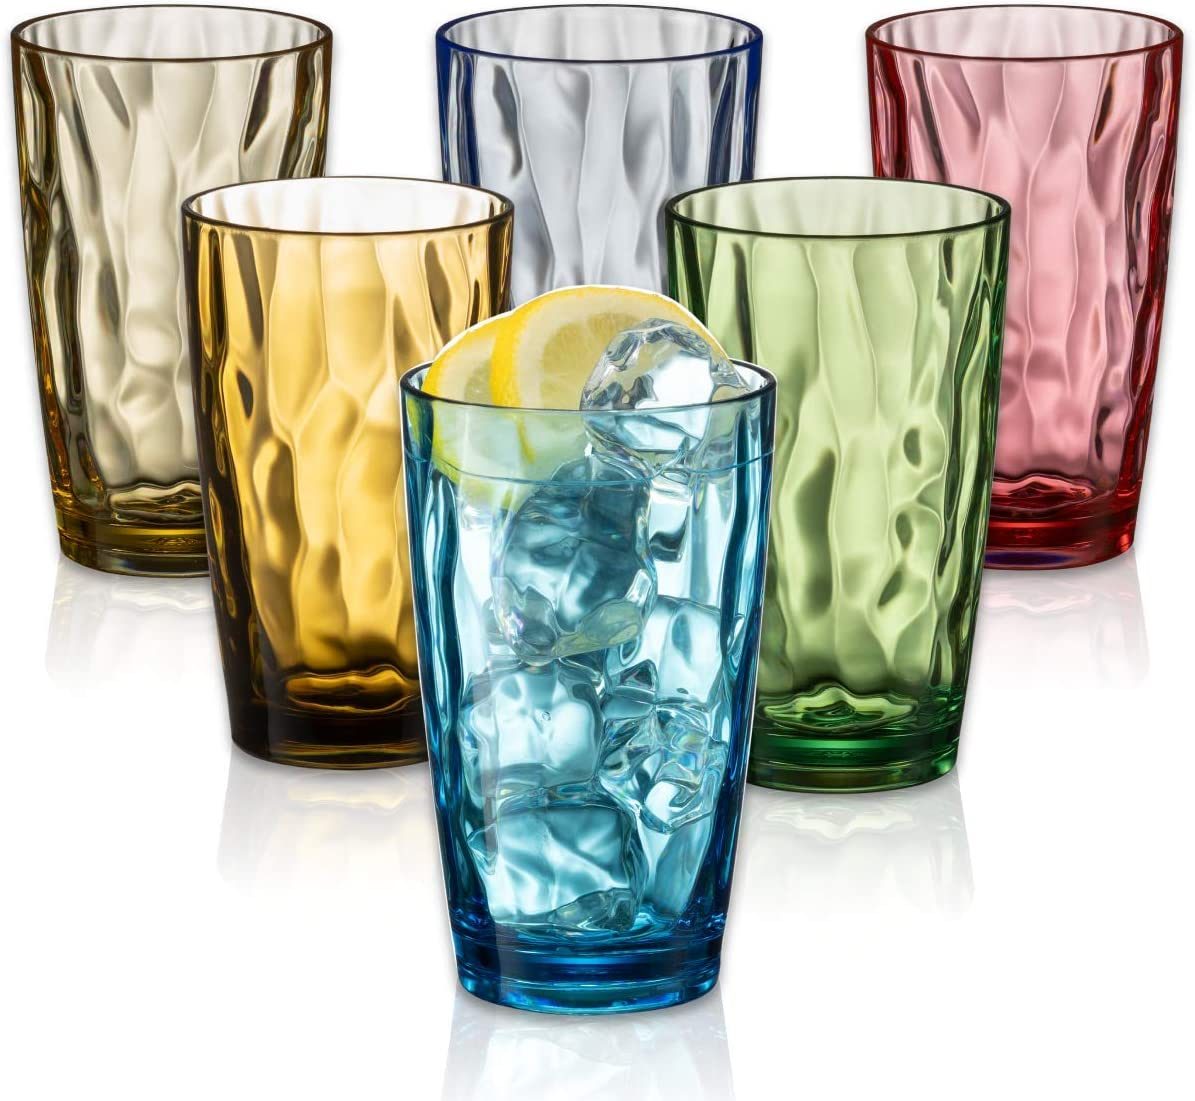 UNBREAKABLE Drinking Glasses SET OF 6 [Highball Glasses 15 Ounces] Shatterproof Plastic Tumblers, Colorful Drinking Plastic Cups, Acrylic/Tritan Plastic Glasses, BPA Free Dishwasher Safe